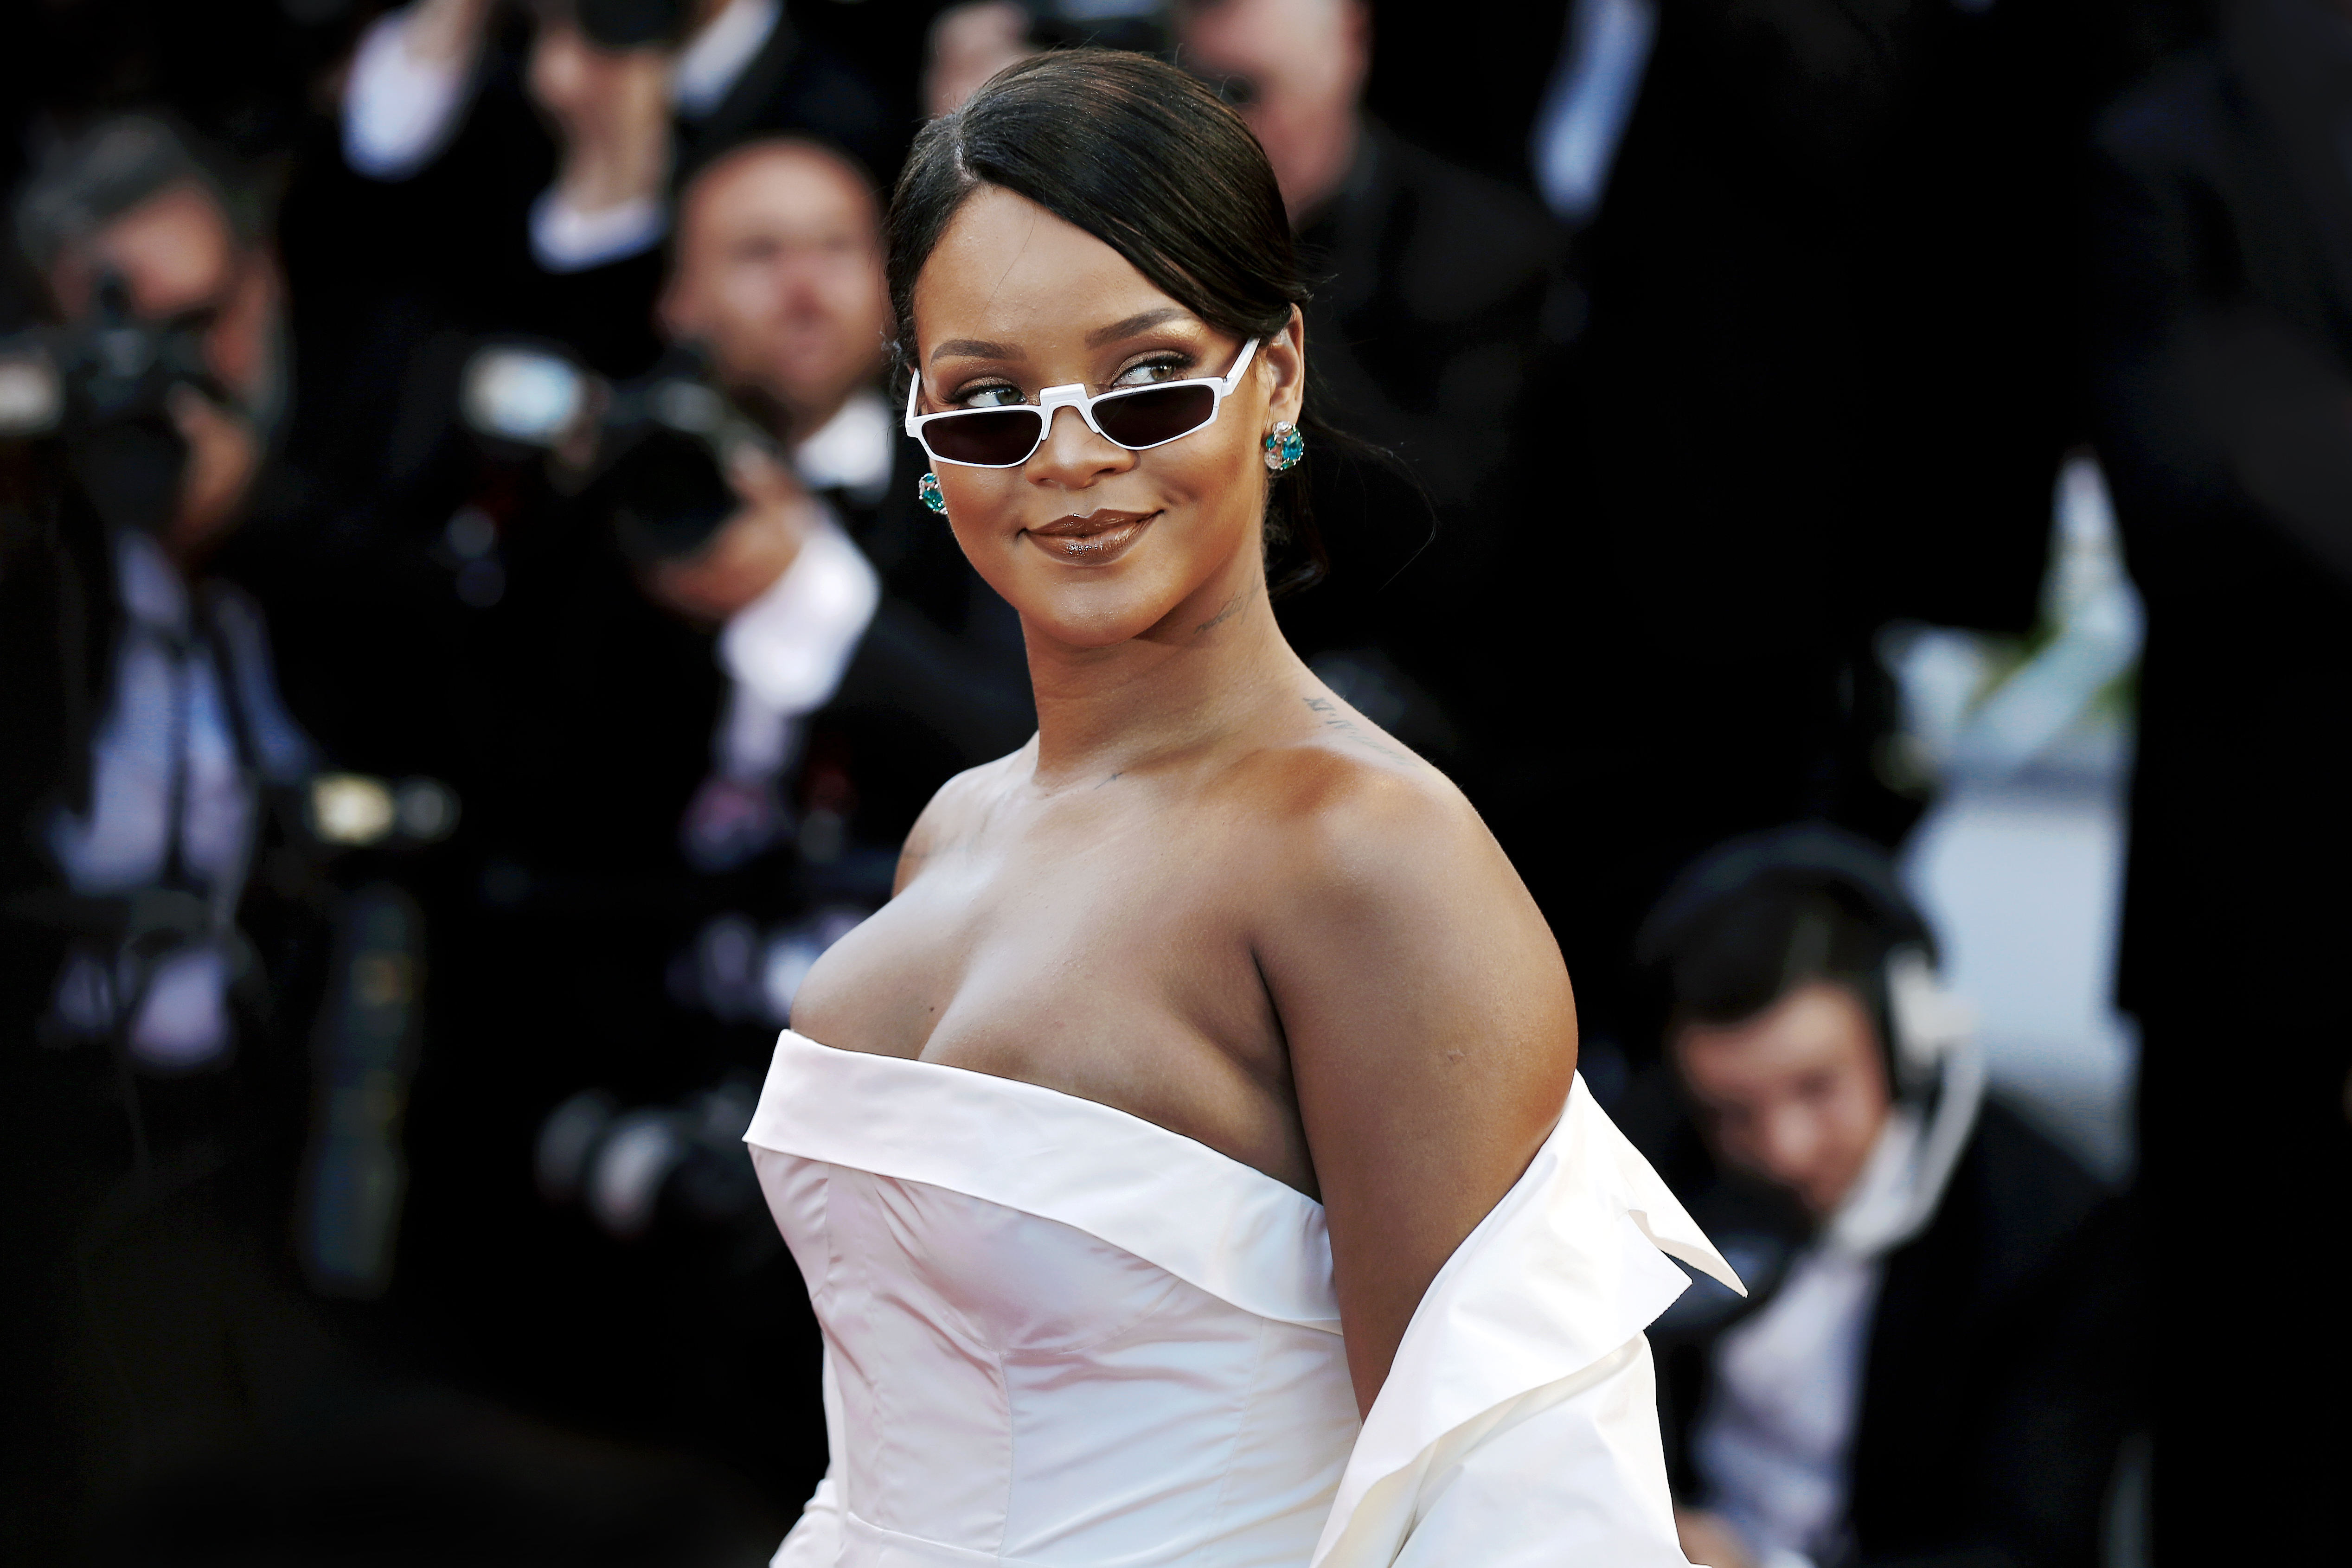 The singer Rihanna wearing a white gown and white glasses, looks toward the camera.